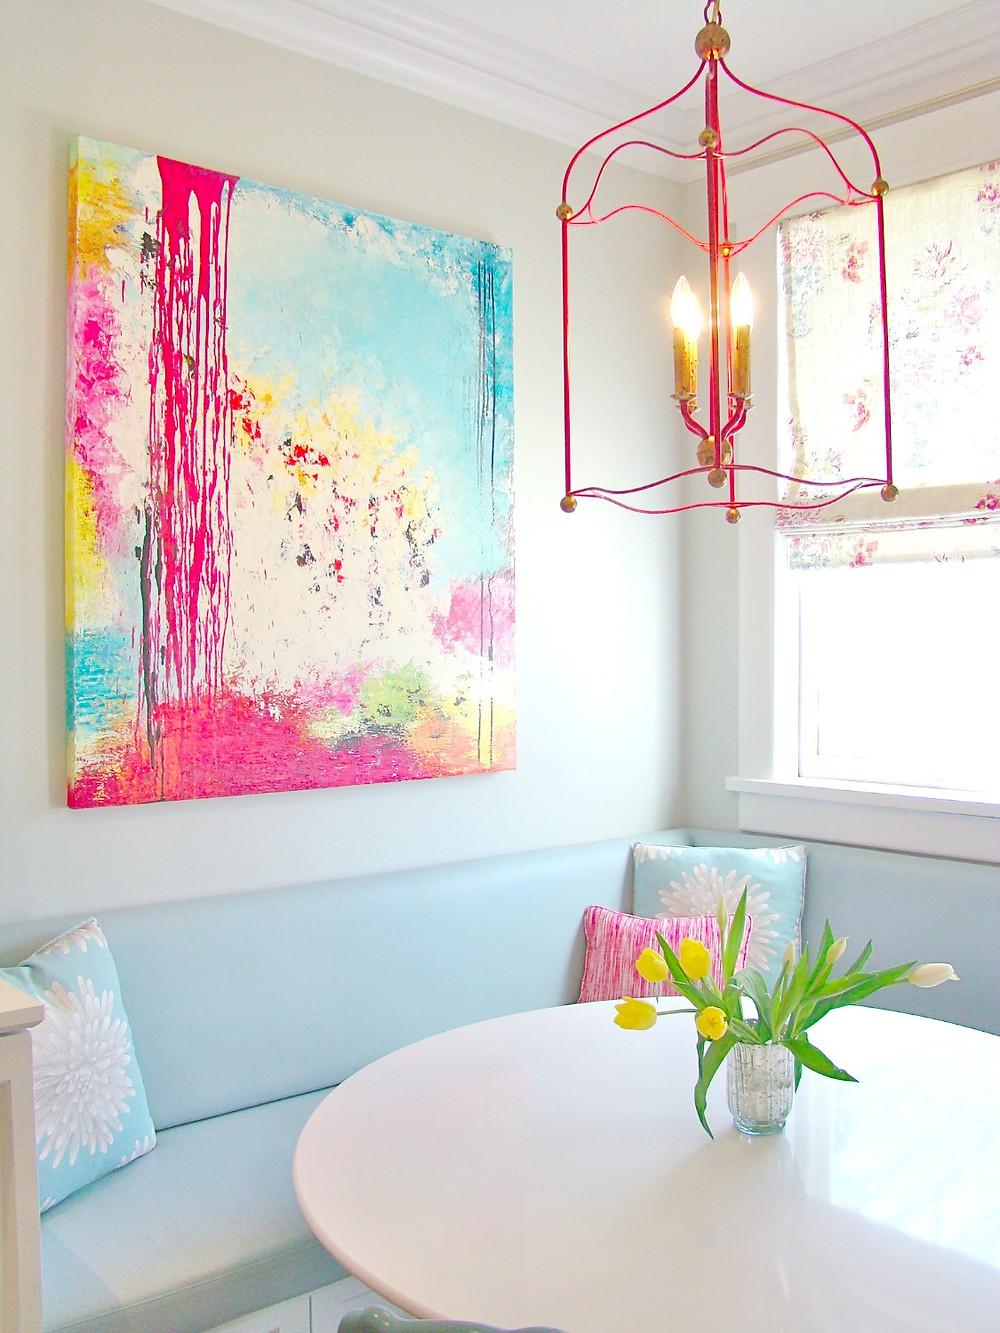 A bright and cheerful painting in a kitchen eating area